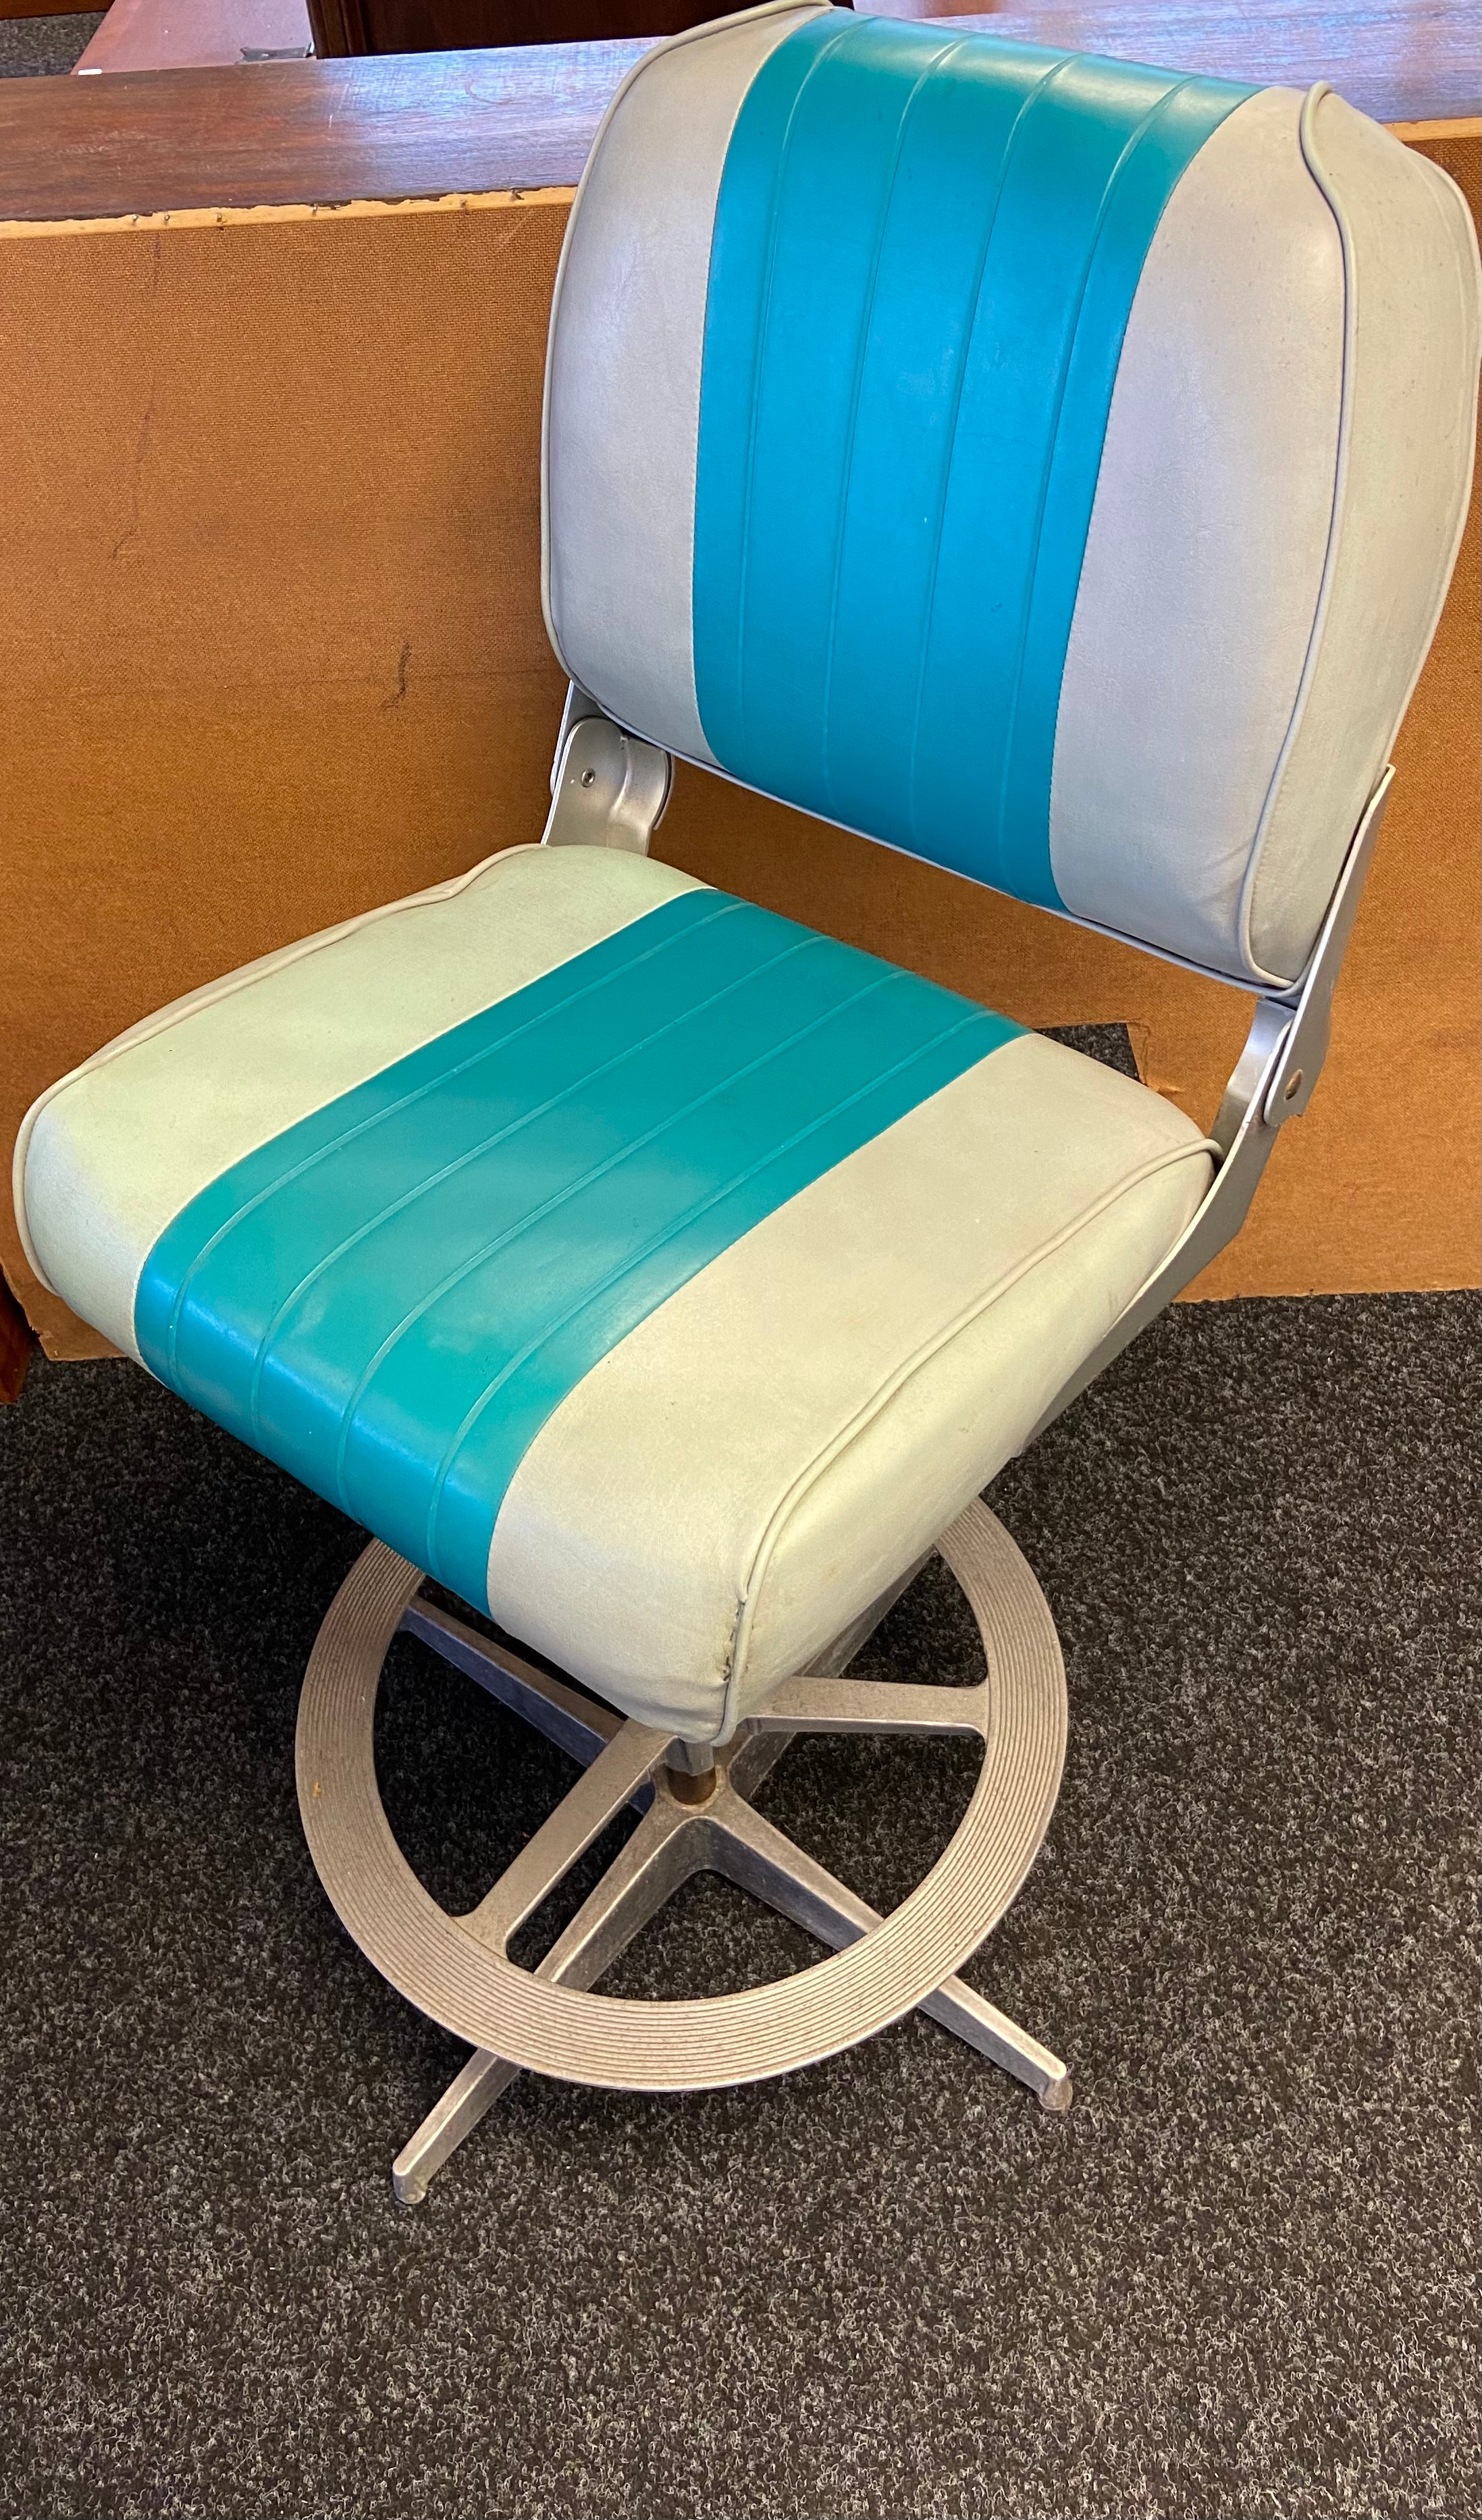 A 50's Upcycled, Heavy duty vinyl speed boat chair. Finished with an industrial base. [100cm in